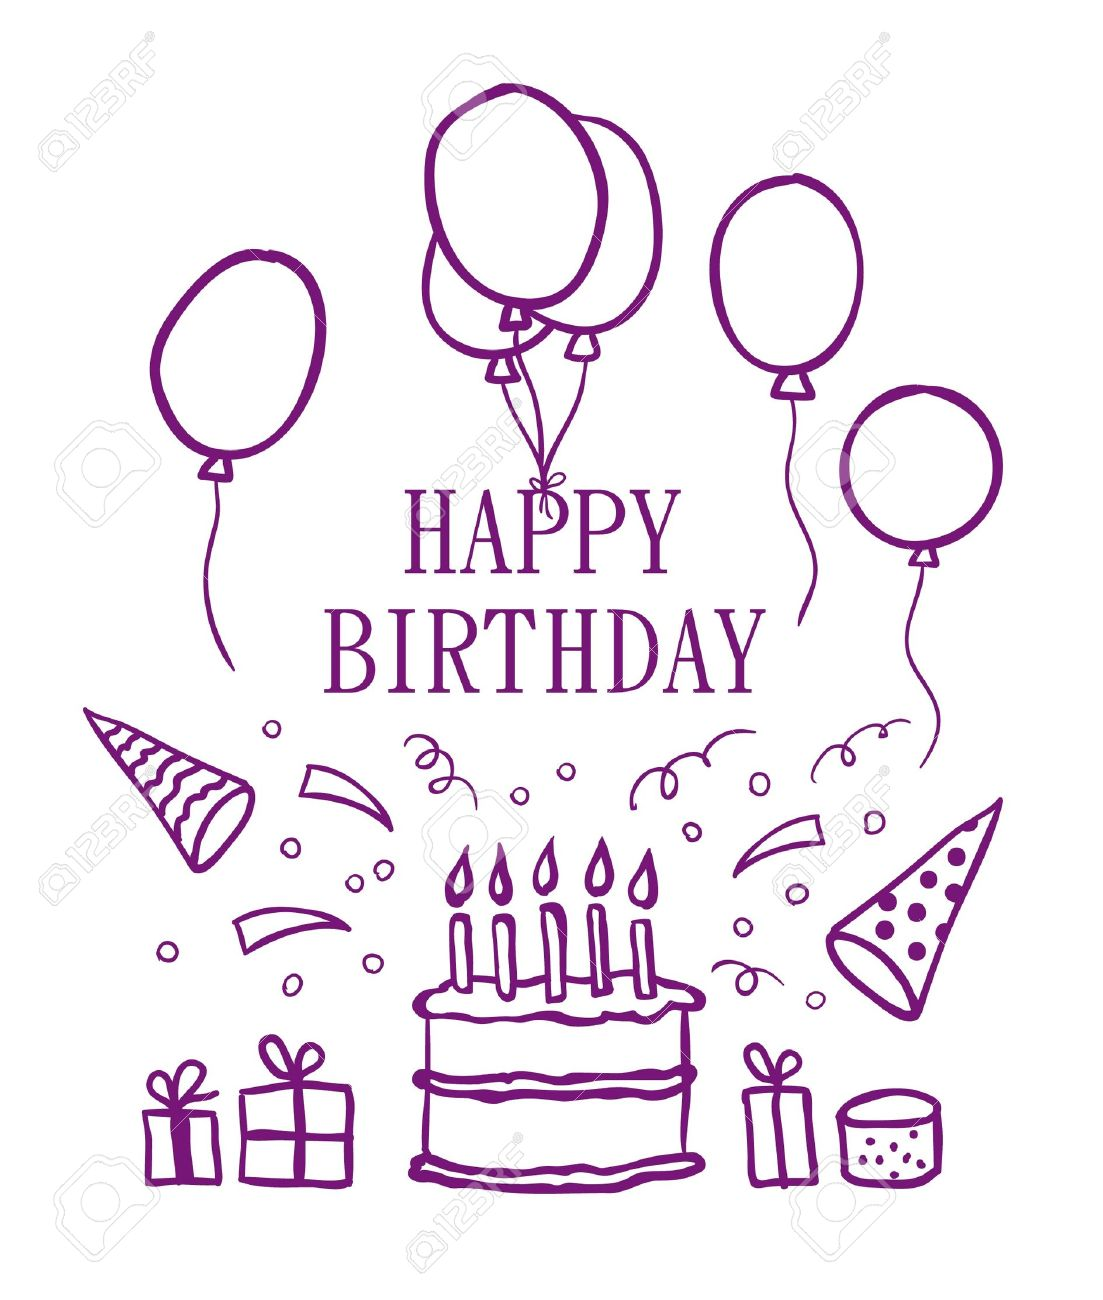 happy birthday drawing pictures ; 14760901-happy-birthday-doodle-elements-vector